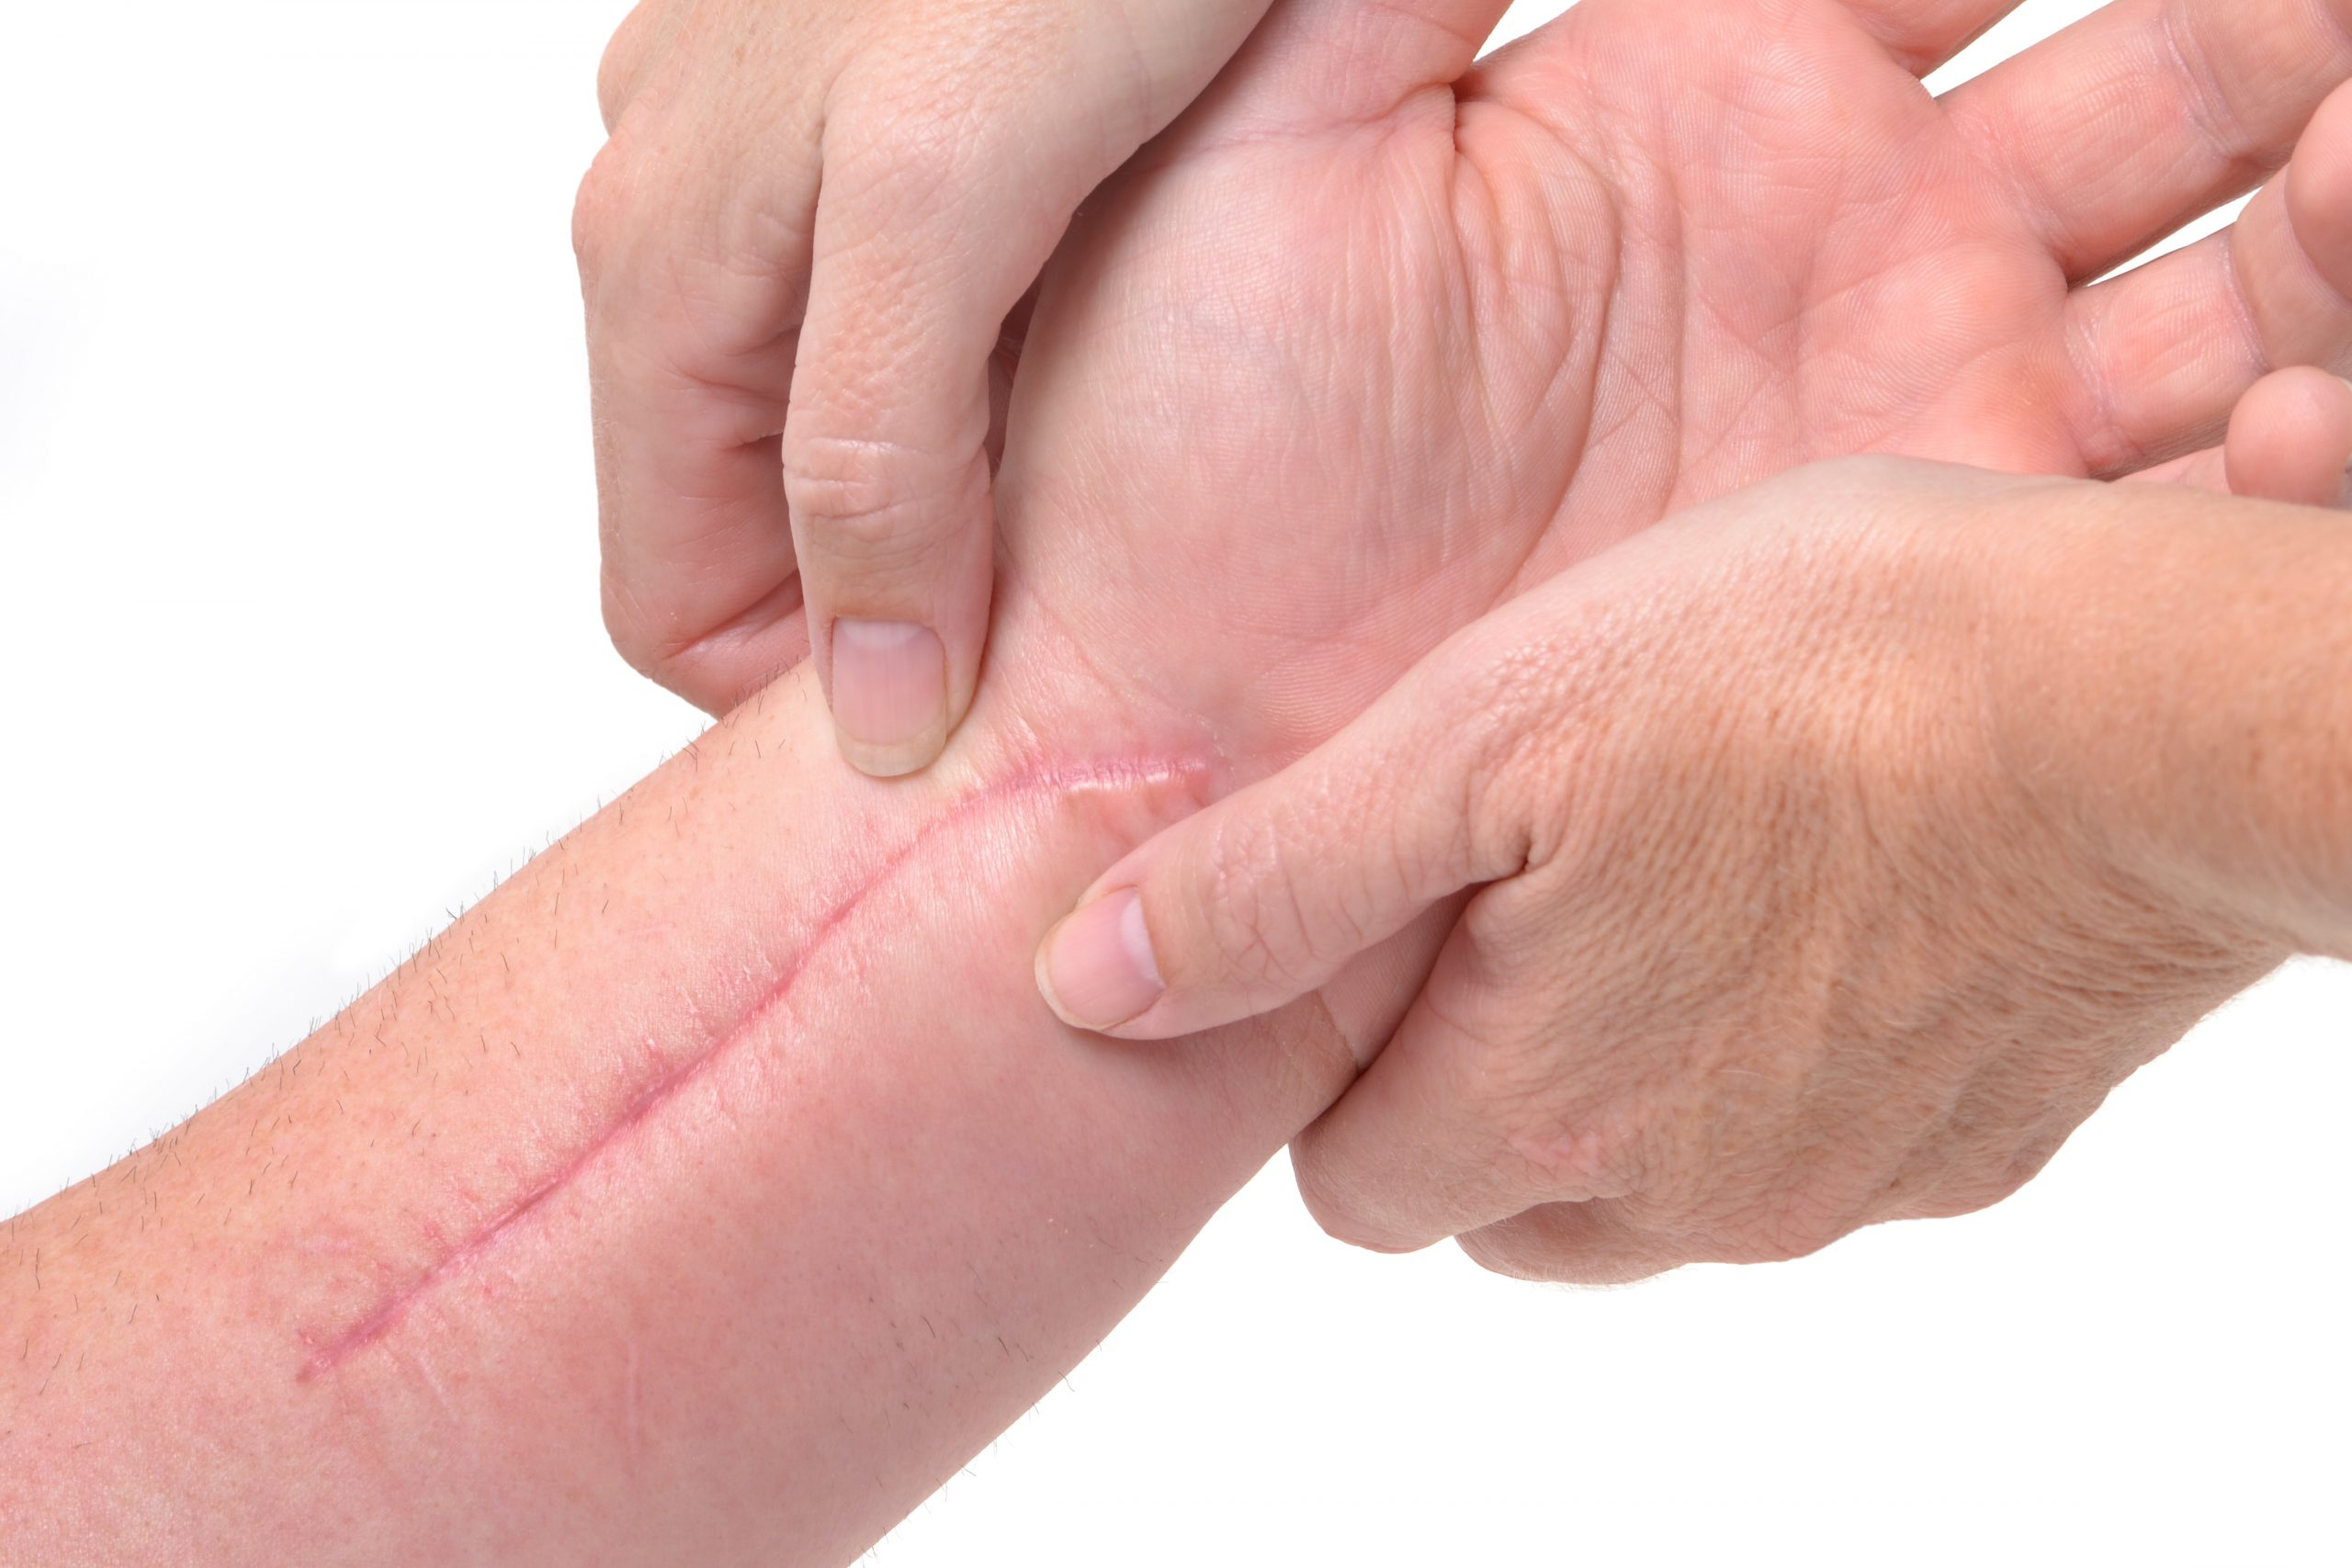 Scar work - treatment for scars